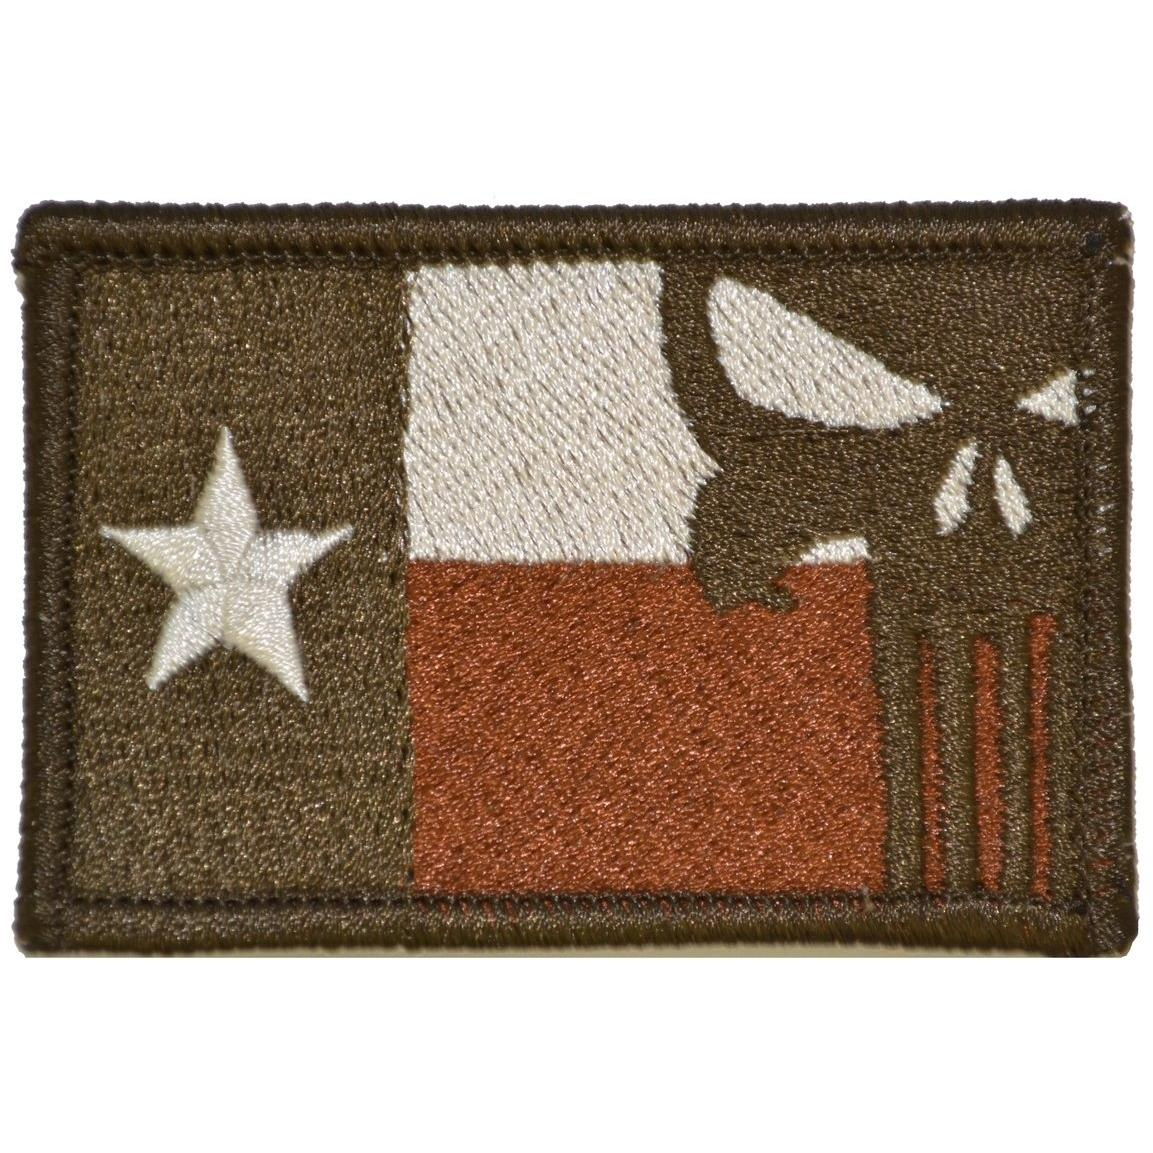 Texas State Flag with Punisher Skull - 2x3 Patch